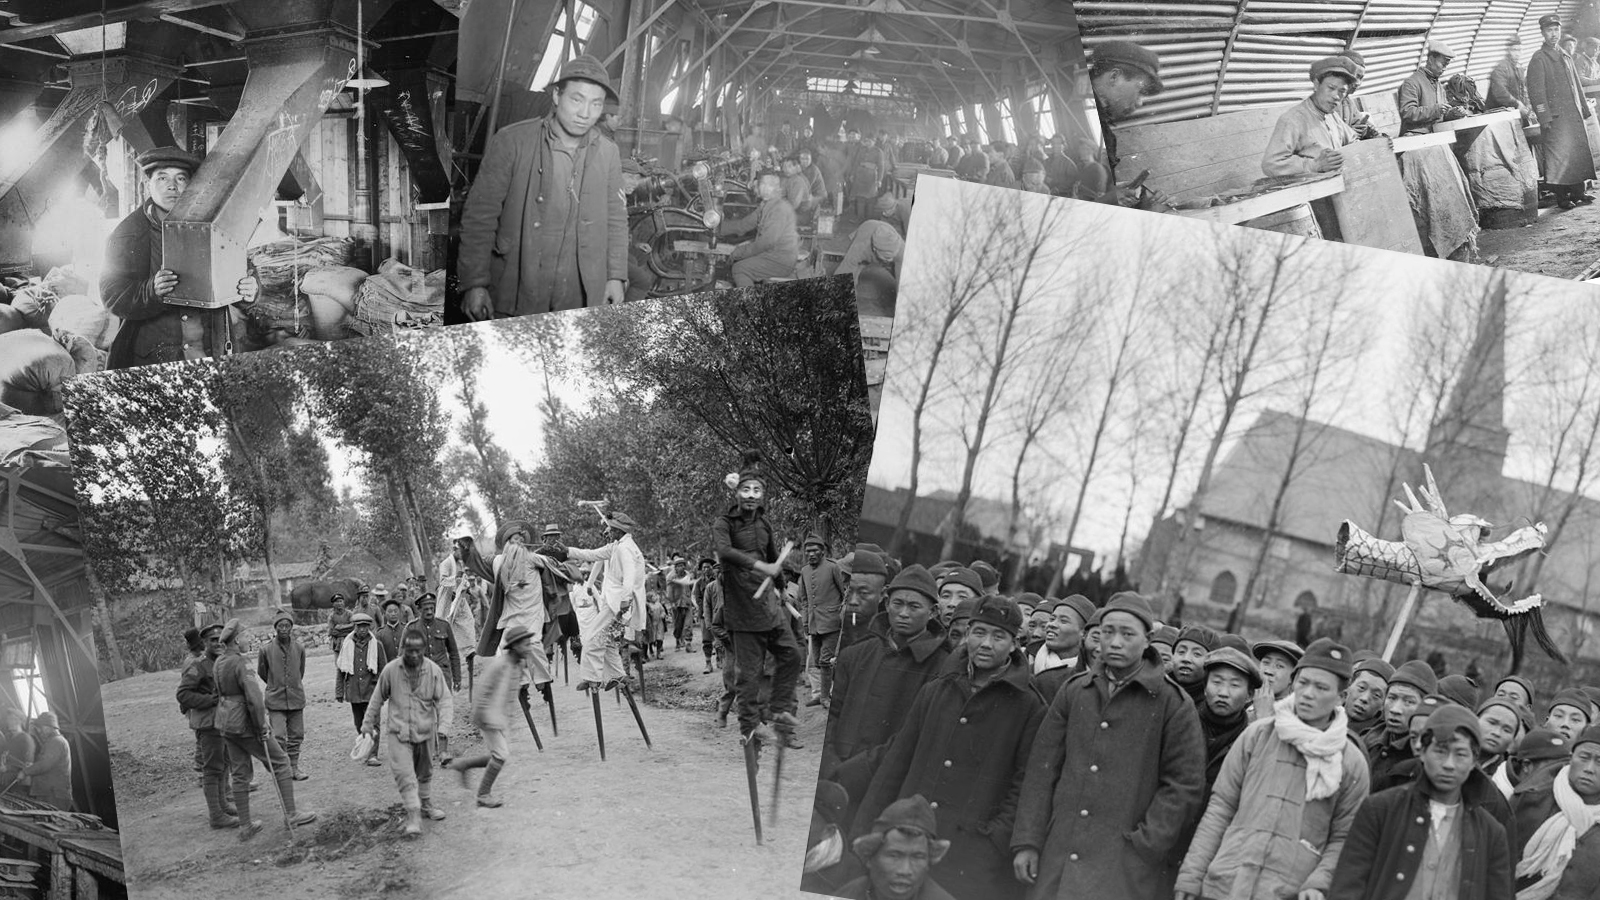 Collage of photographs showing Chinese presence in France during the First World War